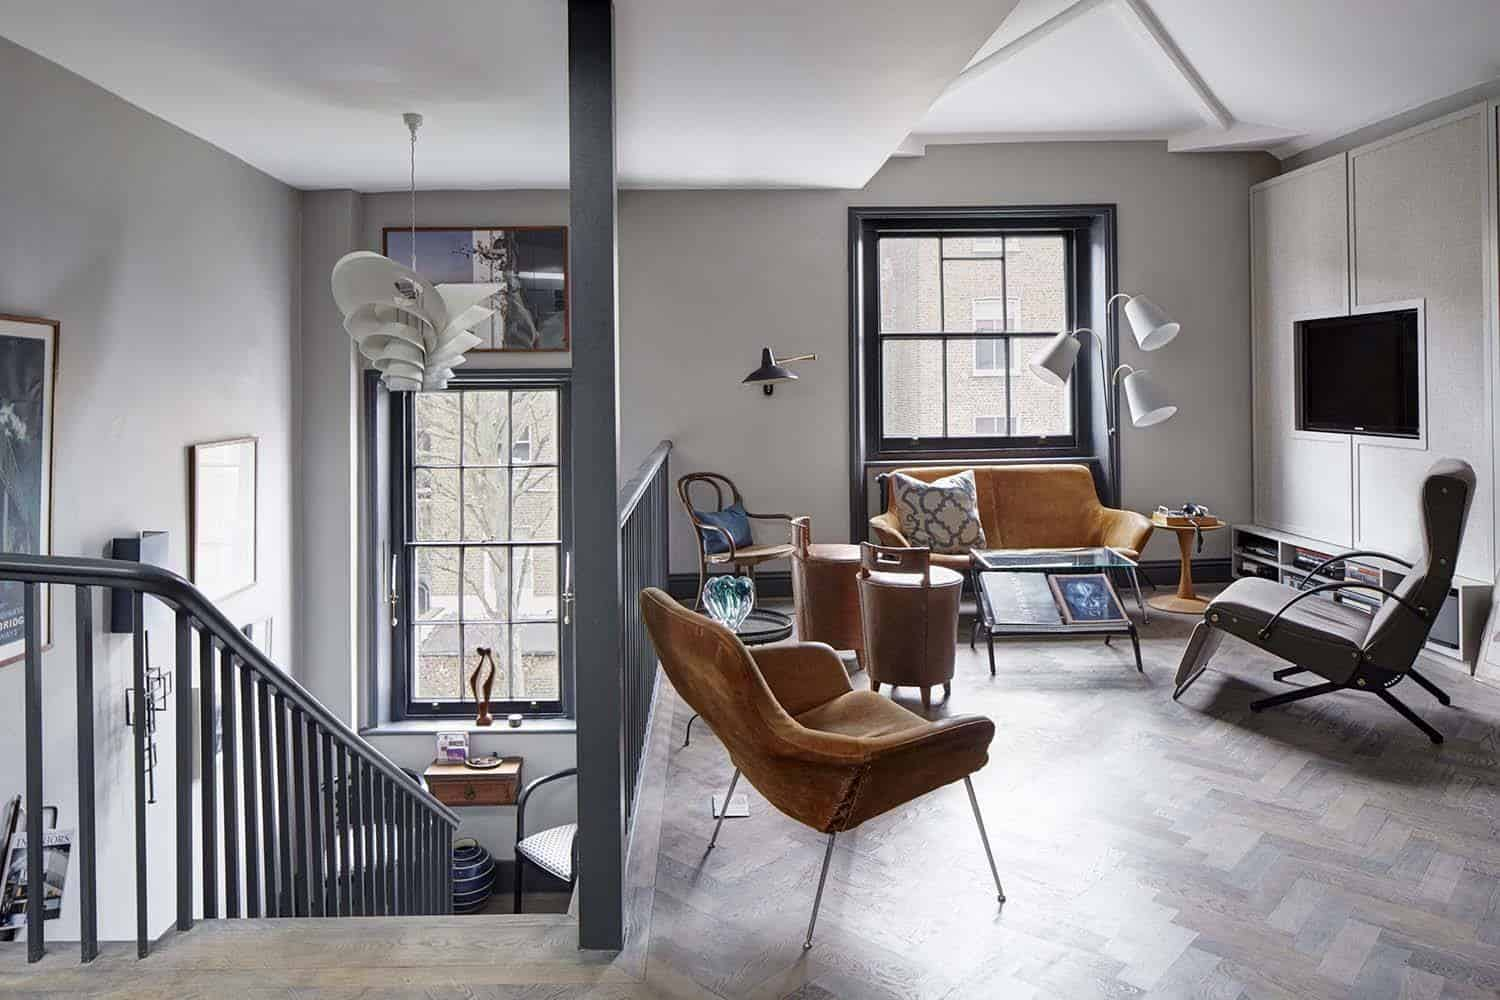 london-loft-apartment-sigmar-01-1-kindesign